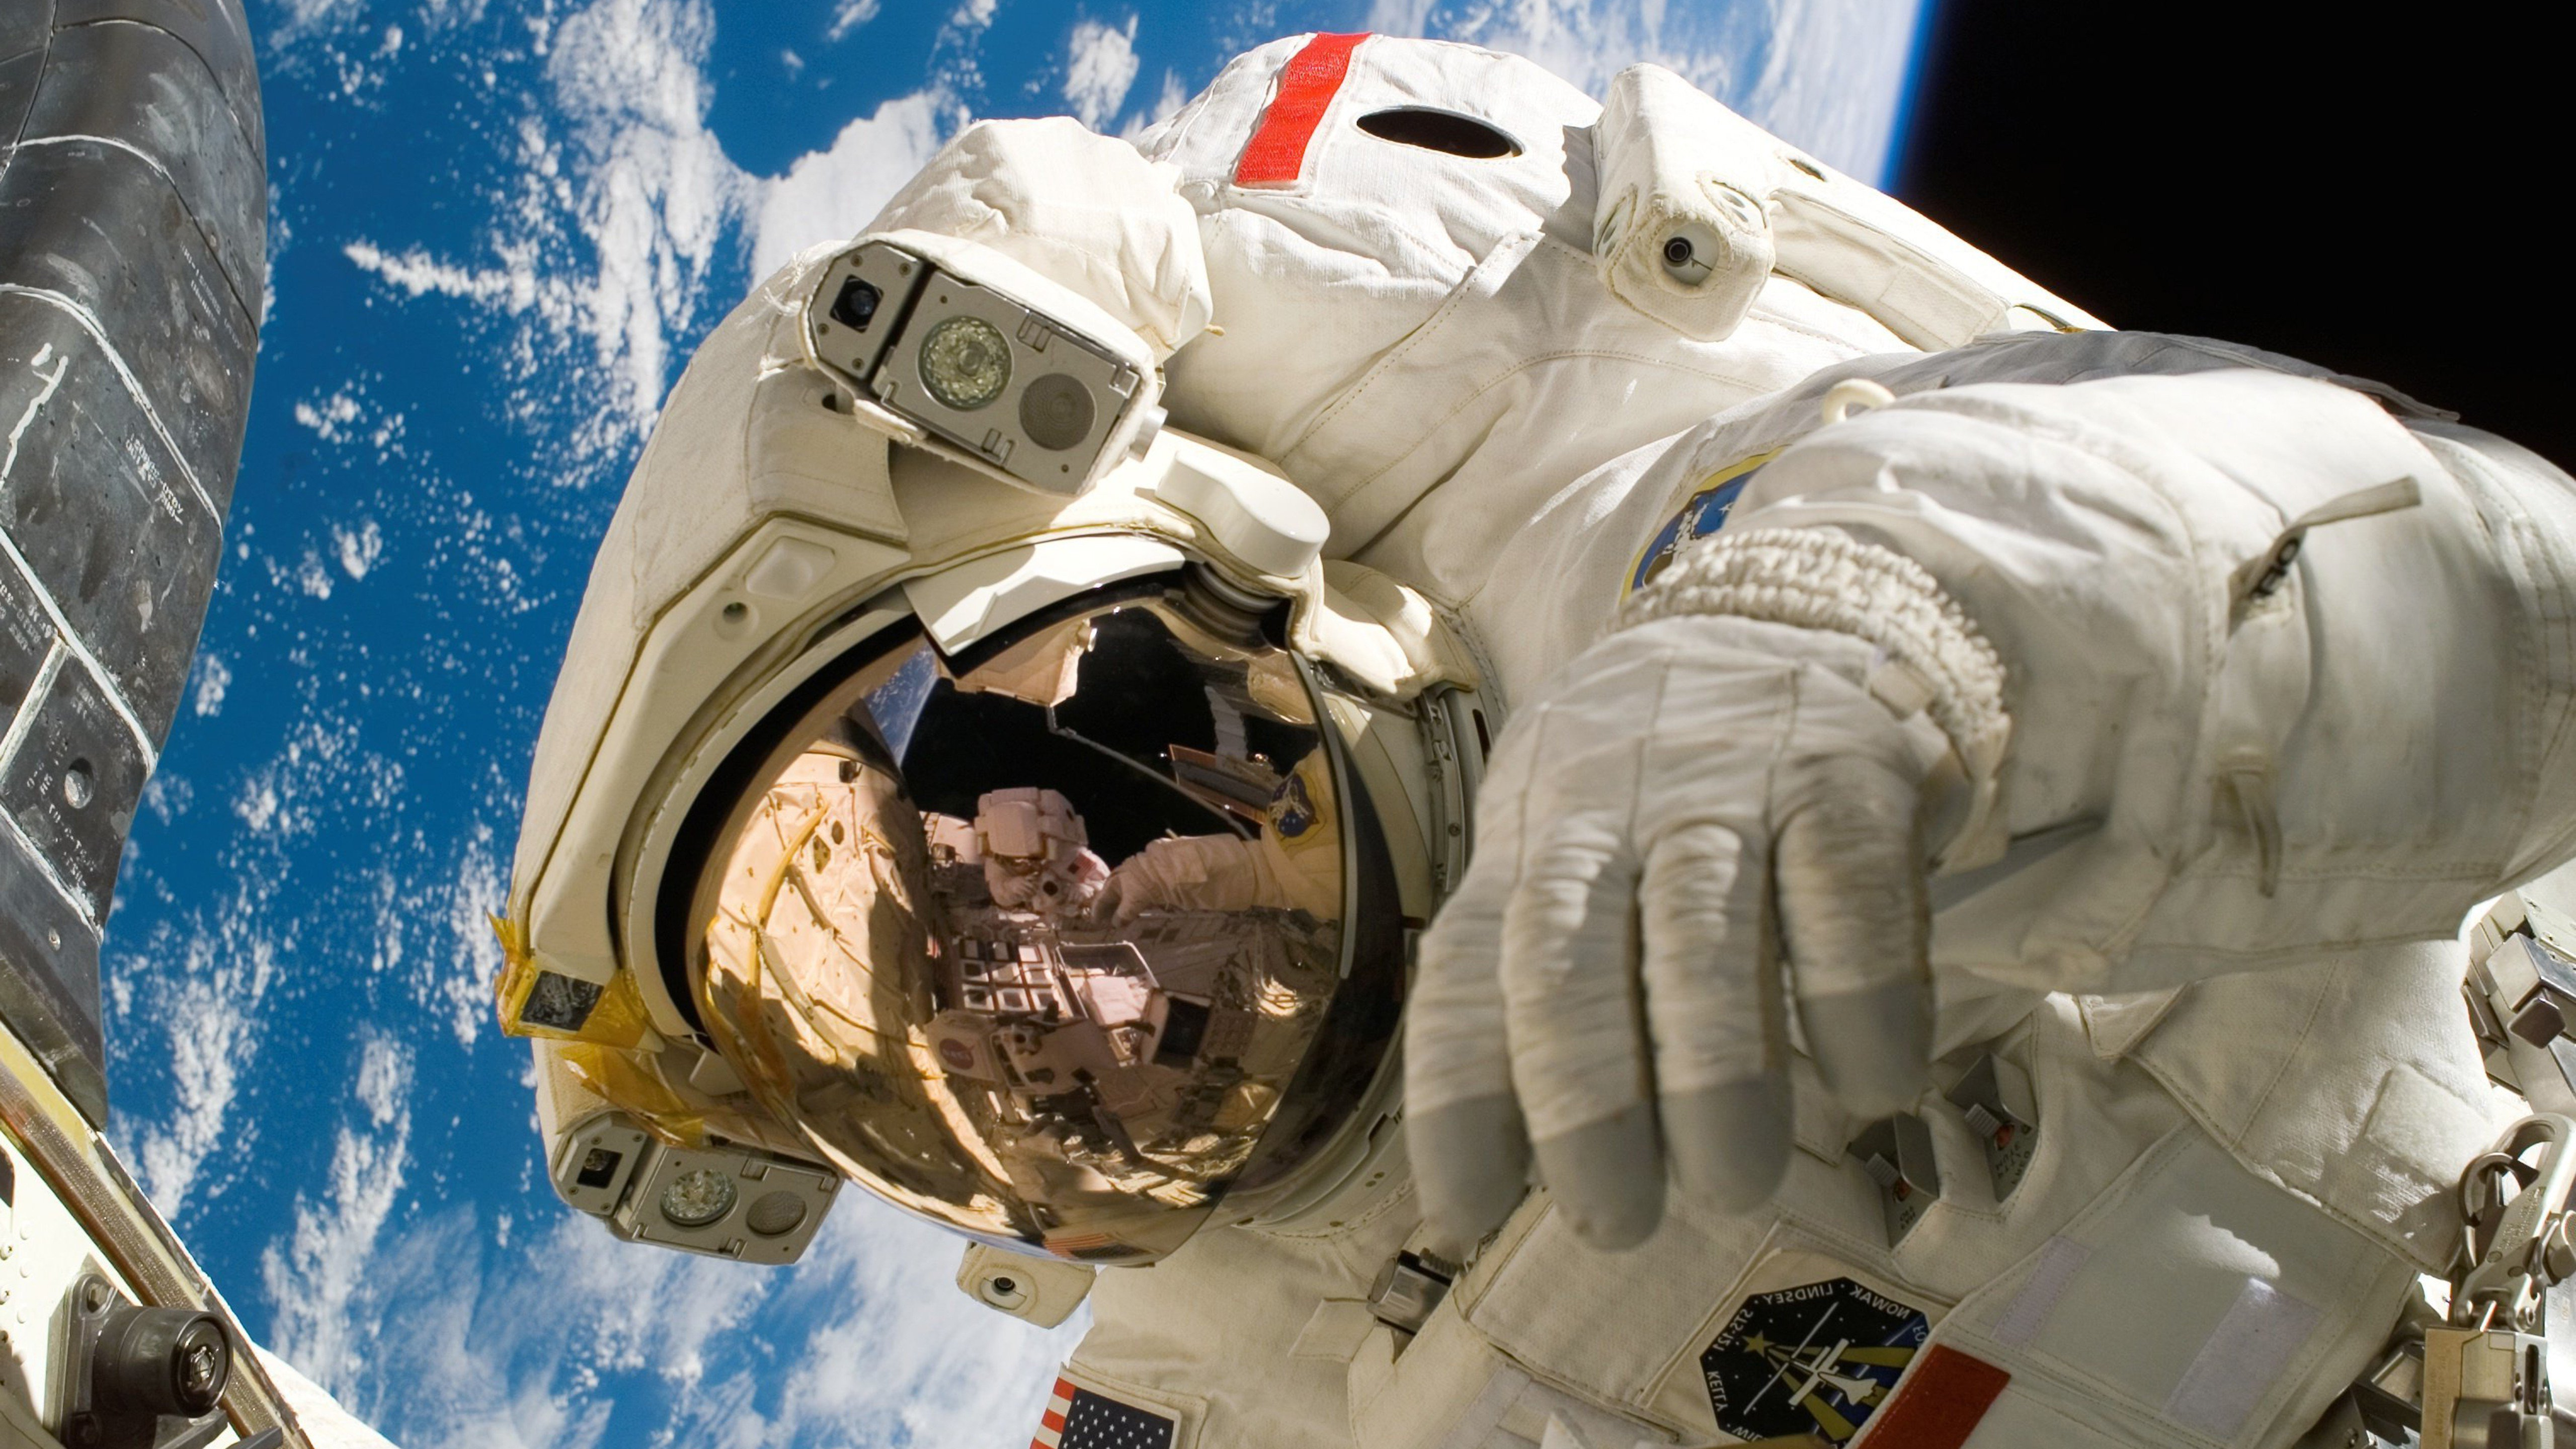 astronaut on moon earth background - photo #29